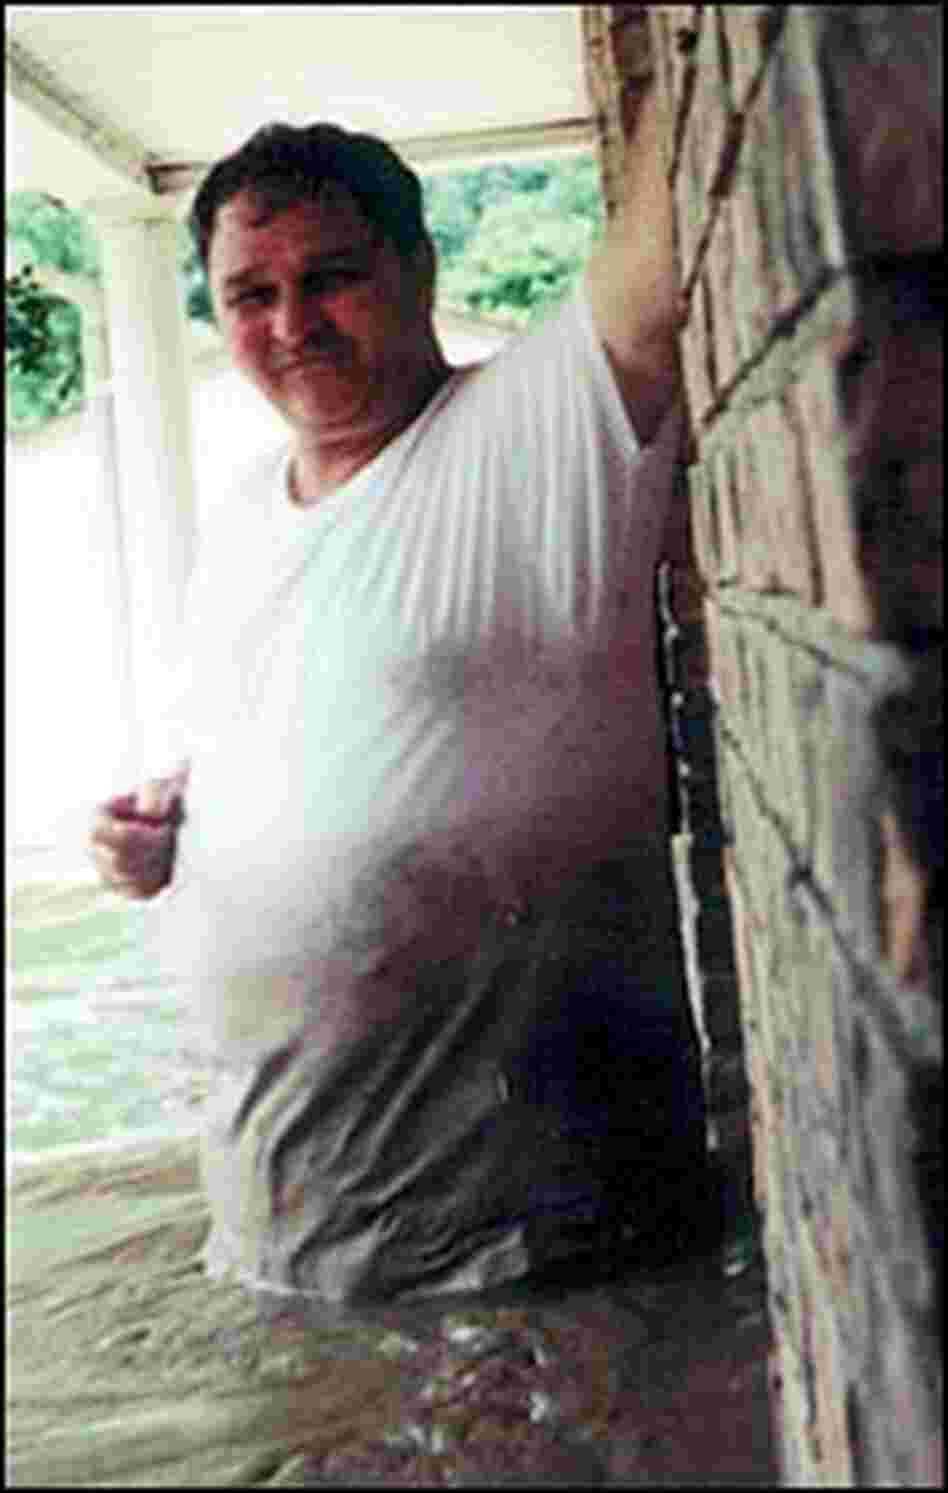 Harold Worley stands in water during the July 2001 flood in Mullens, W.Va.